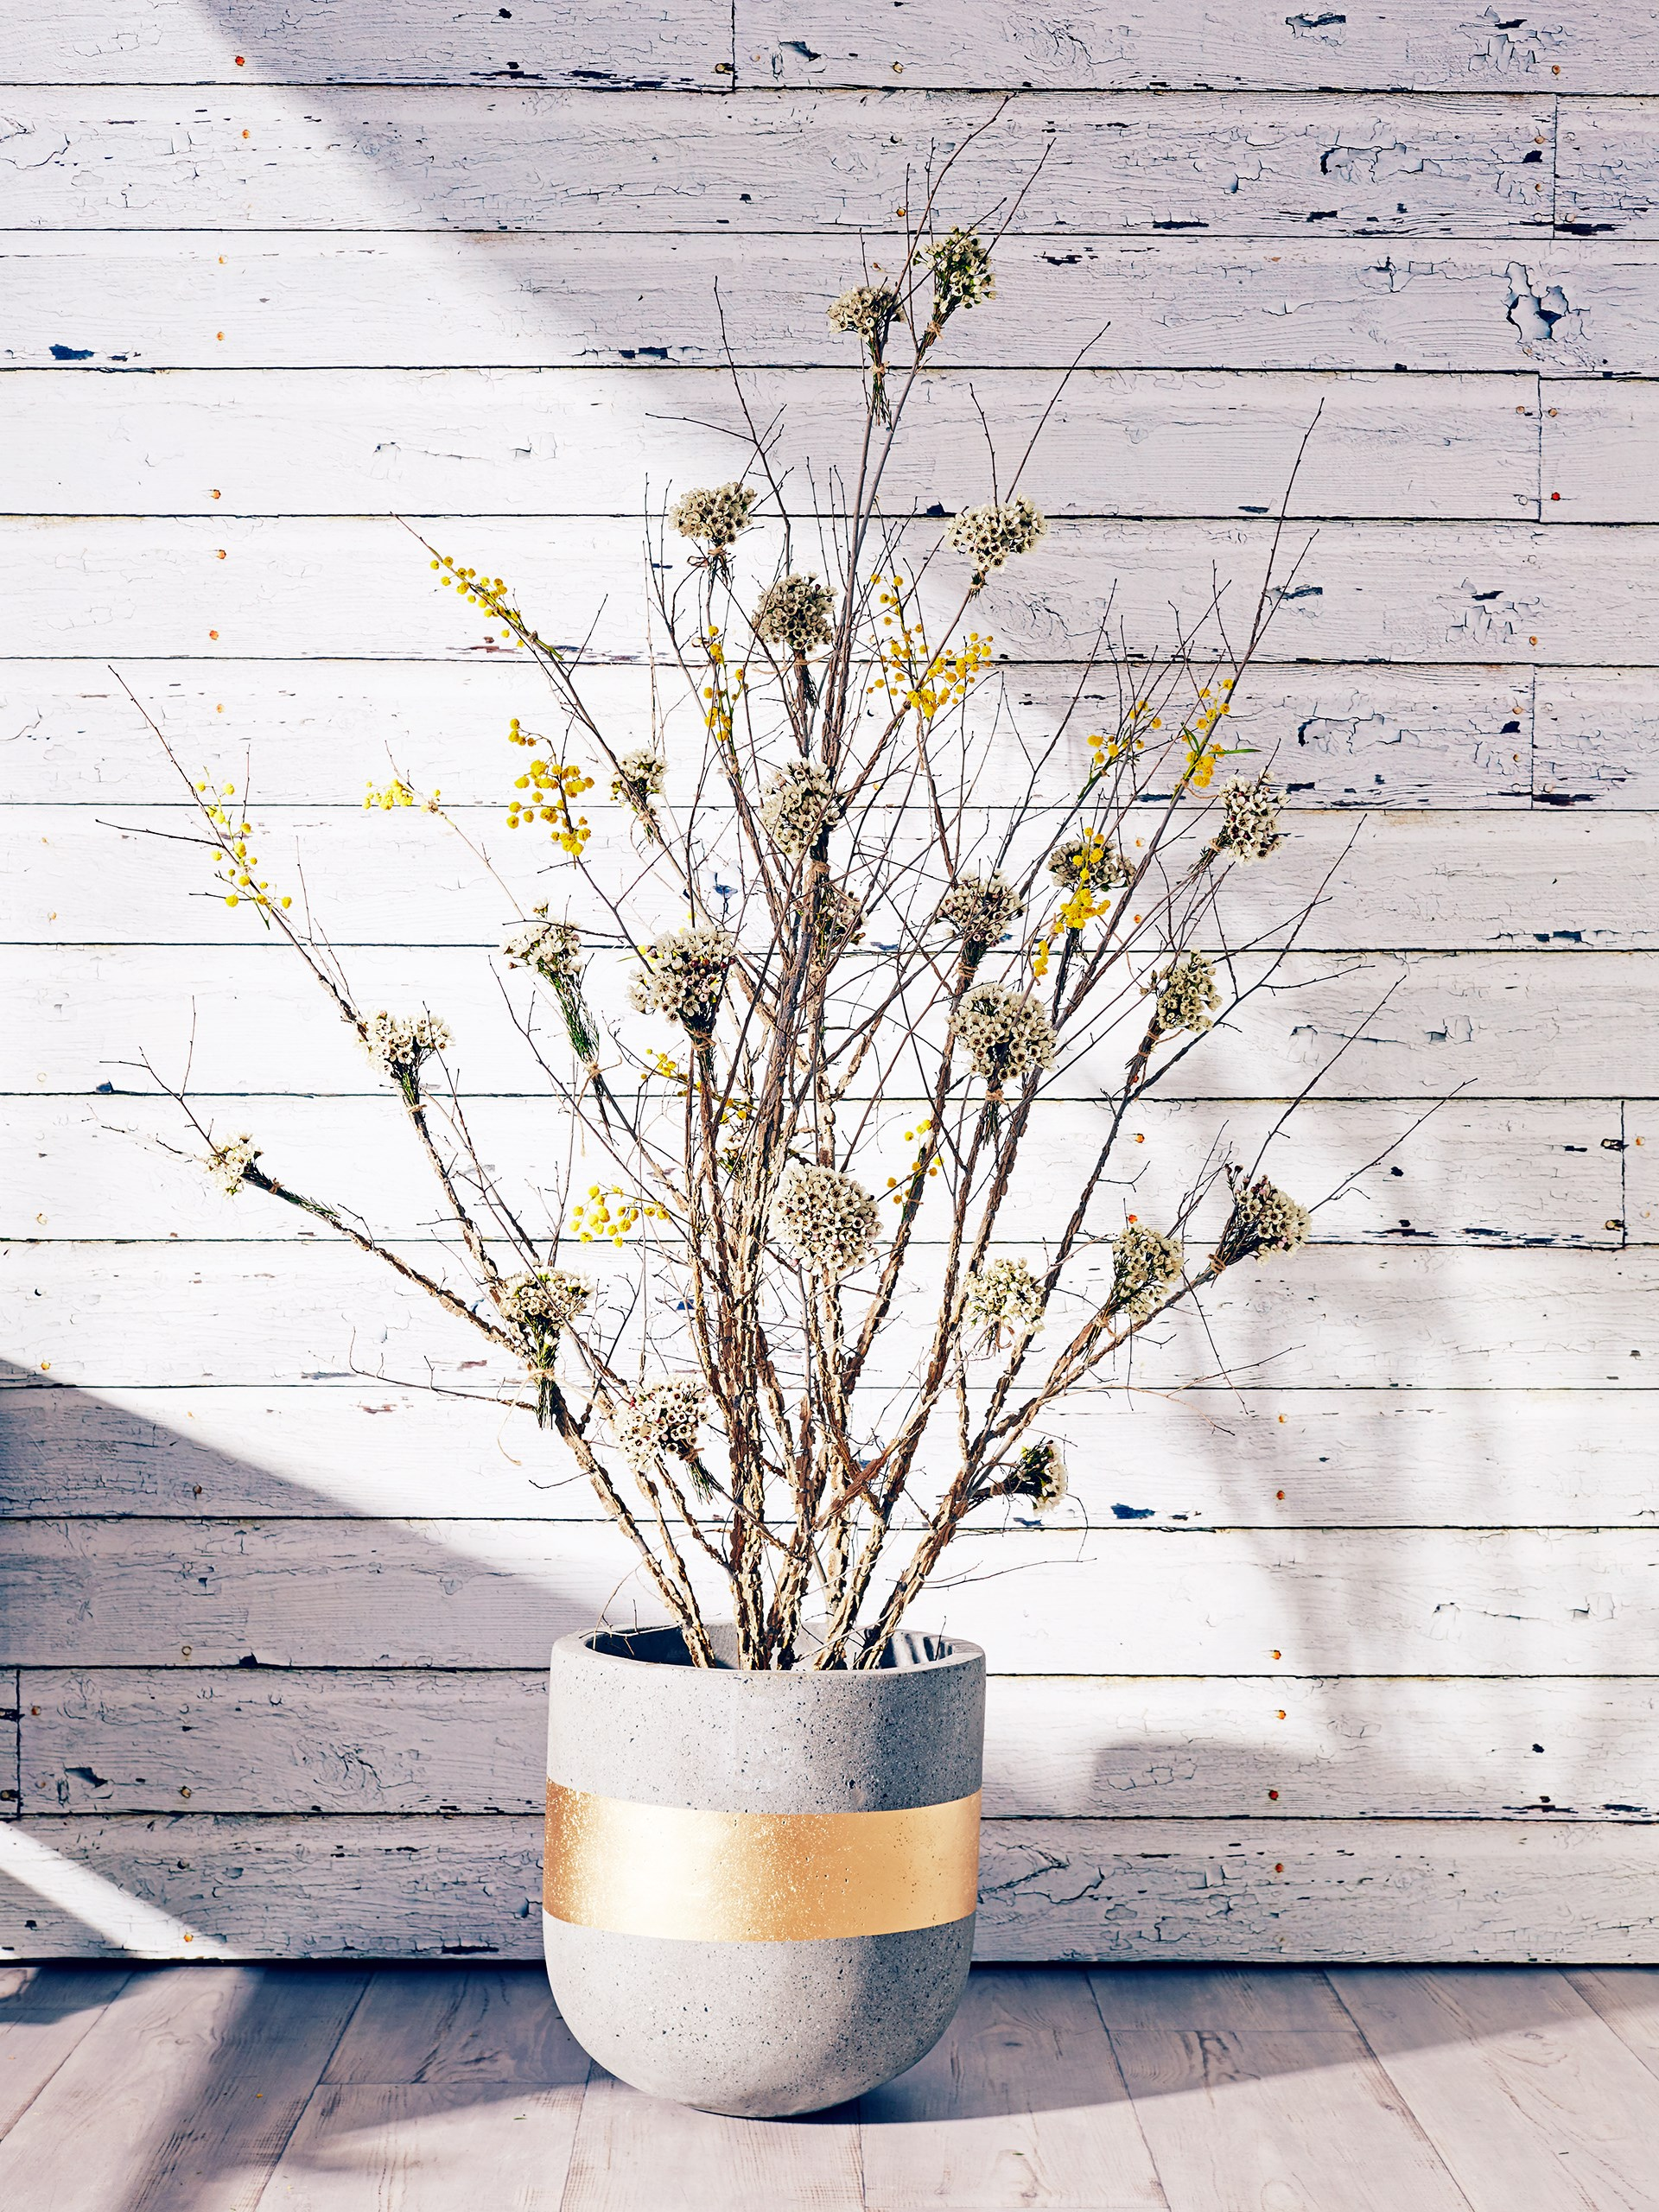 "The rustic theme flows throughout, with a neutral colour palette and a focus on native flora, natural materials and contrasting timbers. Egg concrete **pot** with Gold band from [Koskela](http://www.koskela.com.au/?utm_campaign=supplier/|target=""_blank""), holding willow, wattle and Geraldton wax floral **tree arrangement** from [Wild Blossom Flowers](http://wildblossom.com.au/?utm_campaign=supplier/